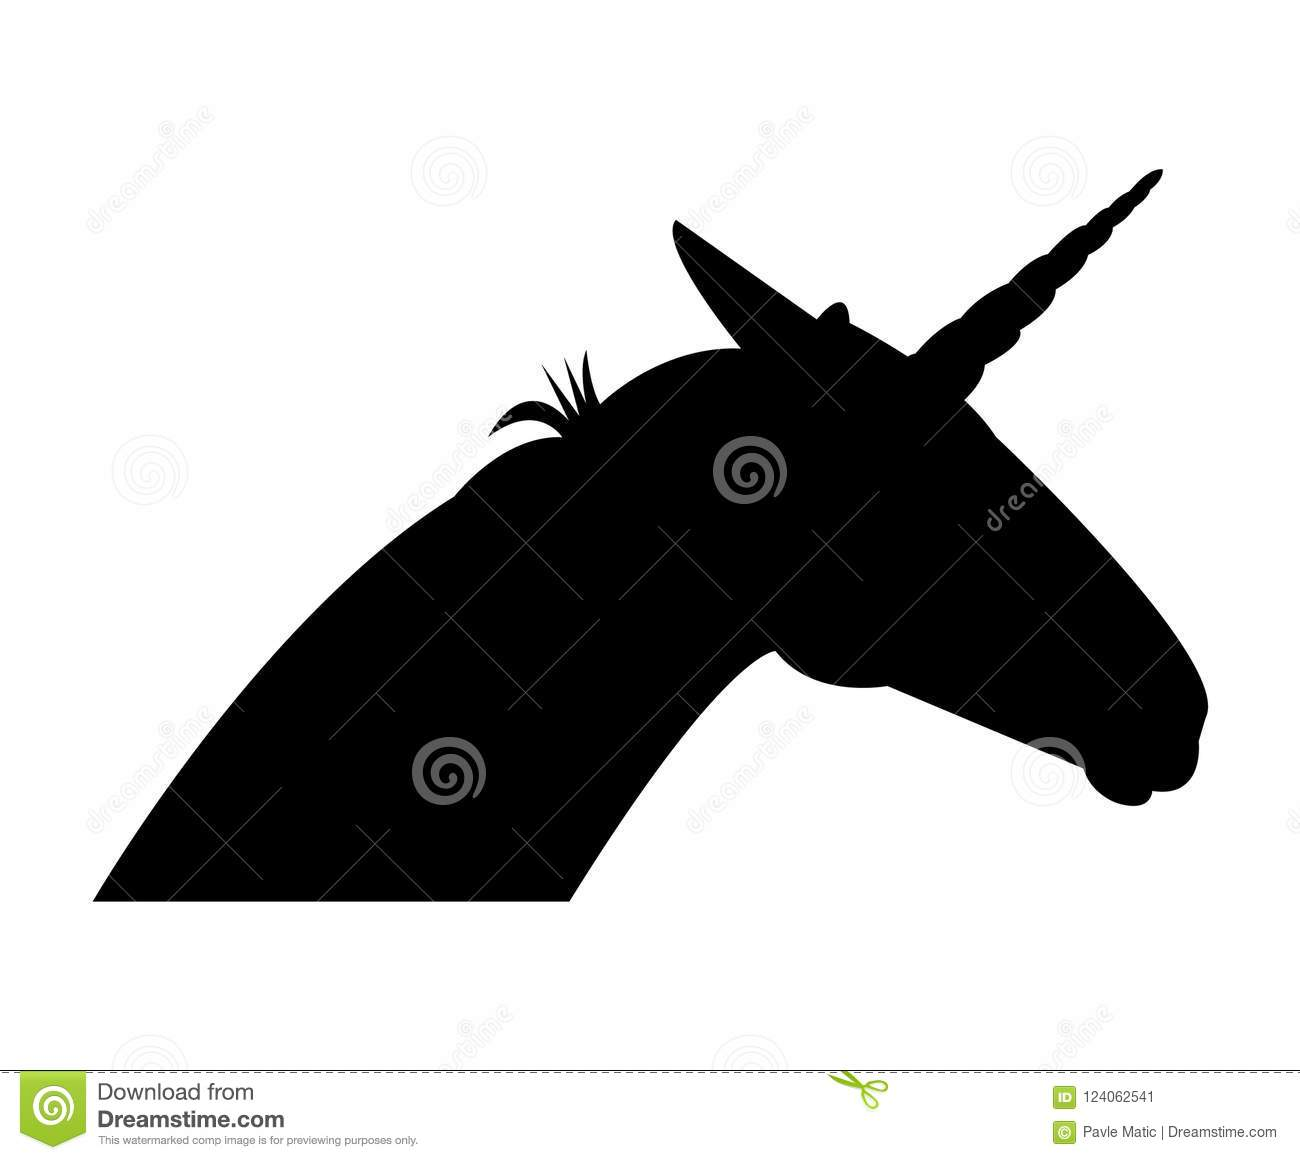 Unicorn Head Black Silhouette Stock Vector - Illustration of